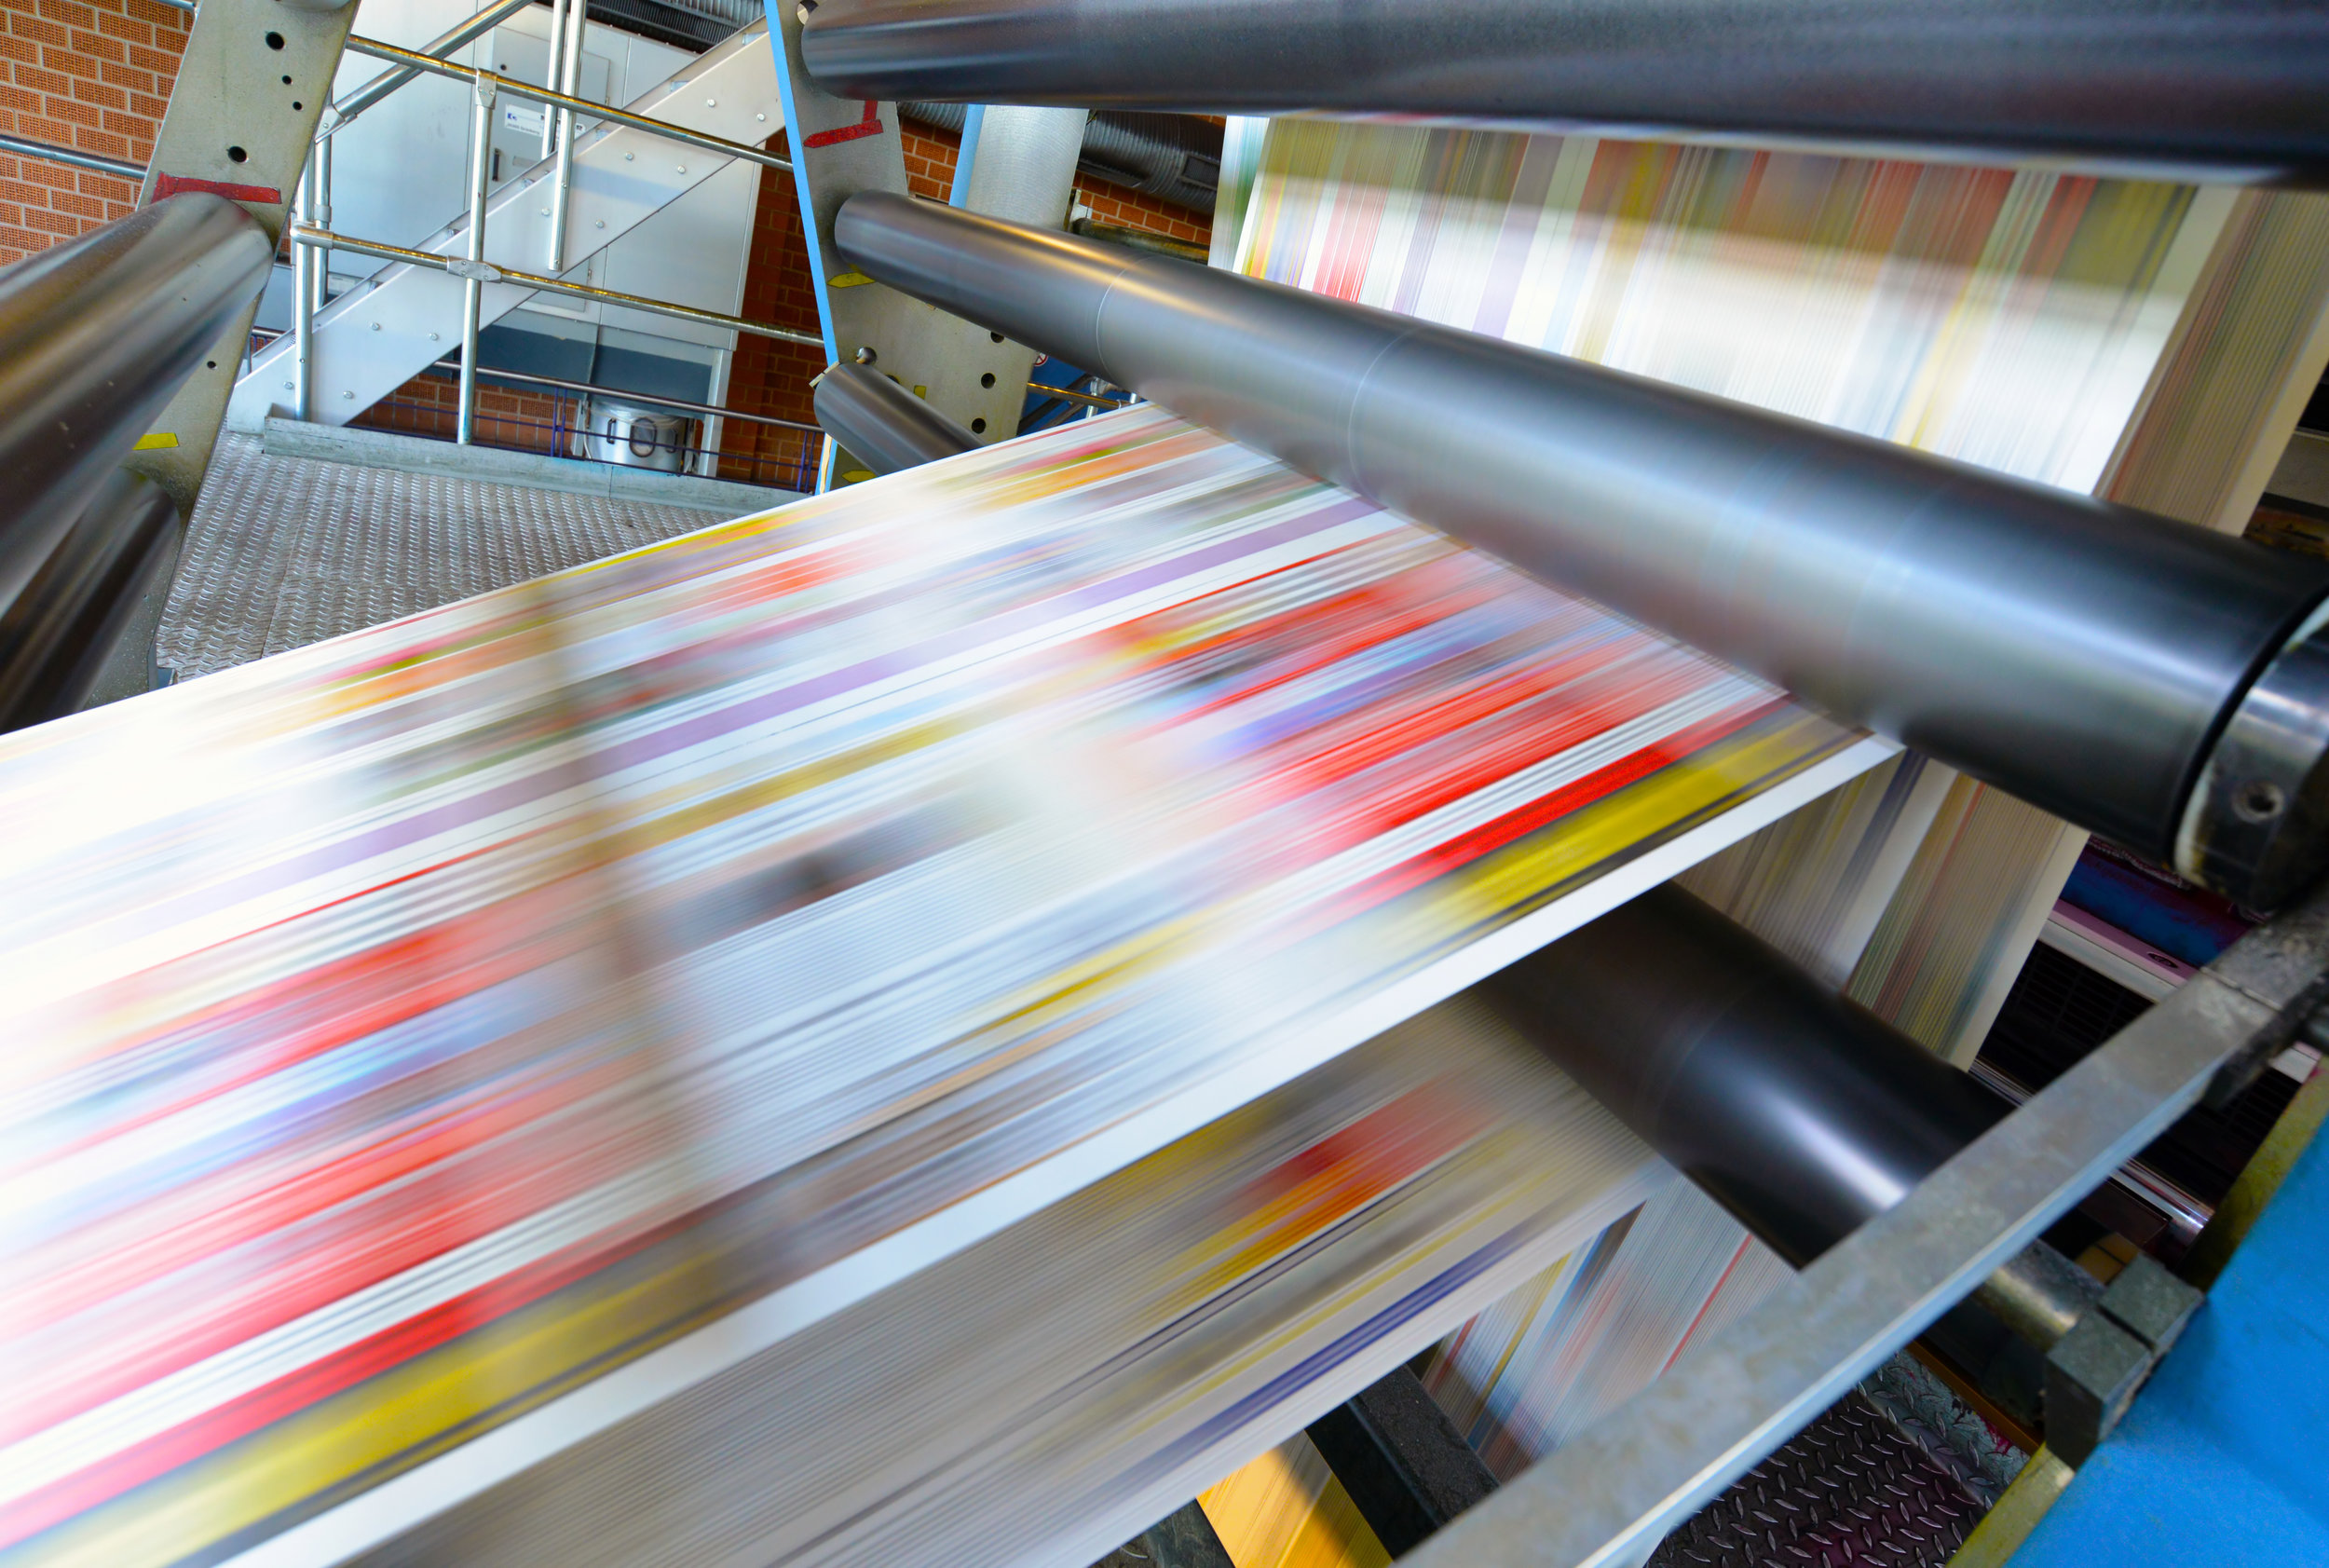 Print - Whether it's bulk printing or small runs, Responsive Mailing Inc., is set up to do either to meet all of our clients needs. We print everything from business cards, postcards, letters, and envelopes to magazines, newsletters, brochures and other publications.